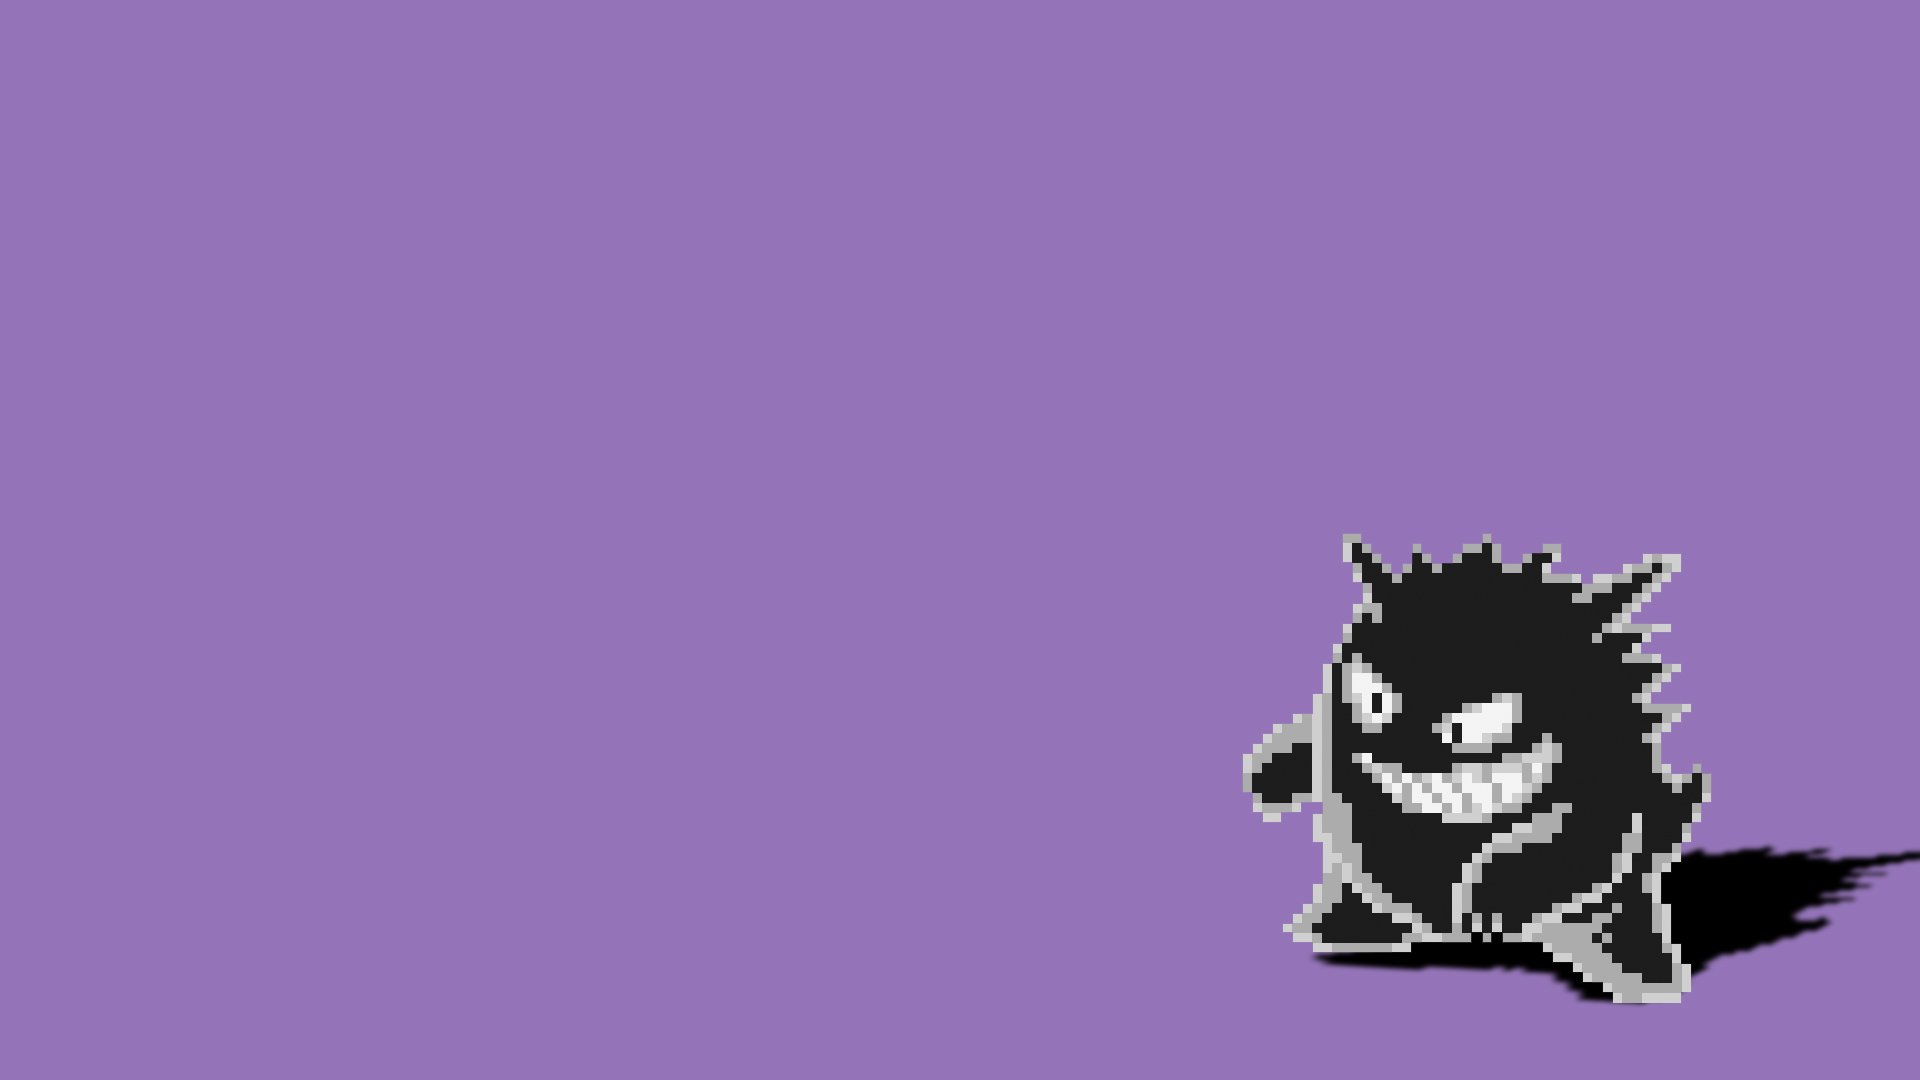 Pokemon Gengar Wallpaper 1920x1080 Pokemon Gengar 1920x1080